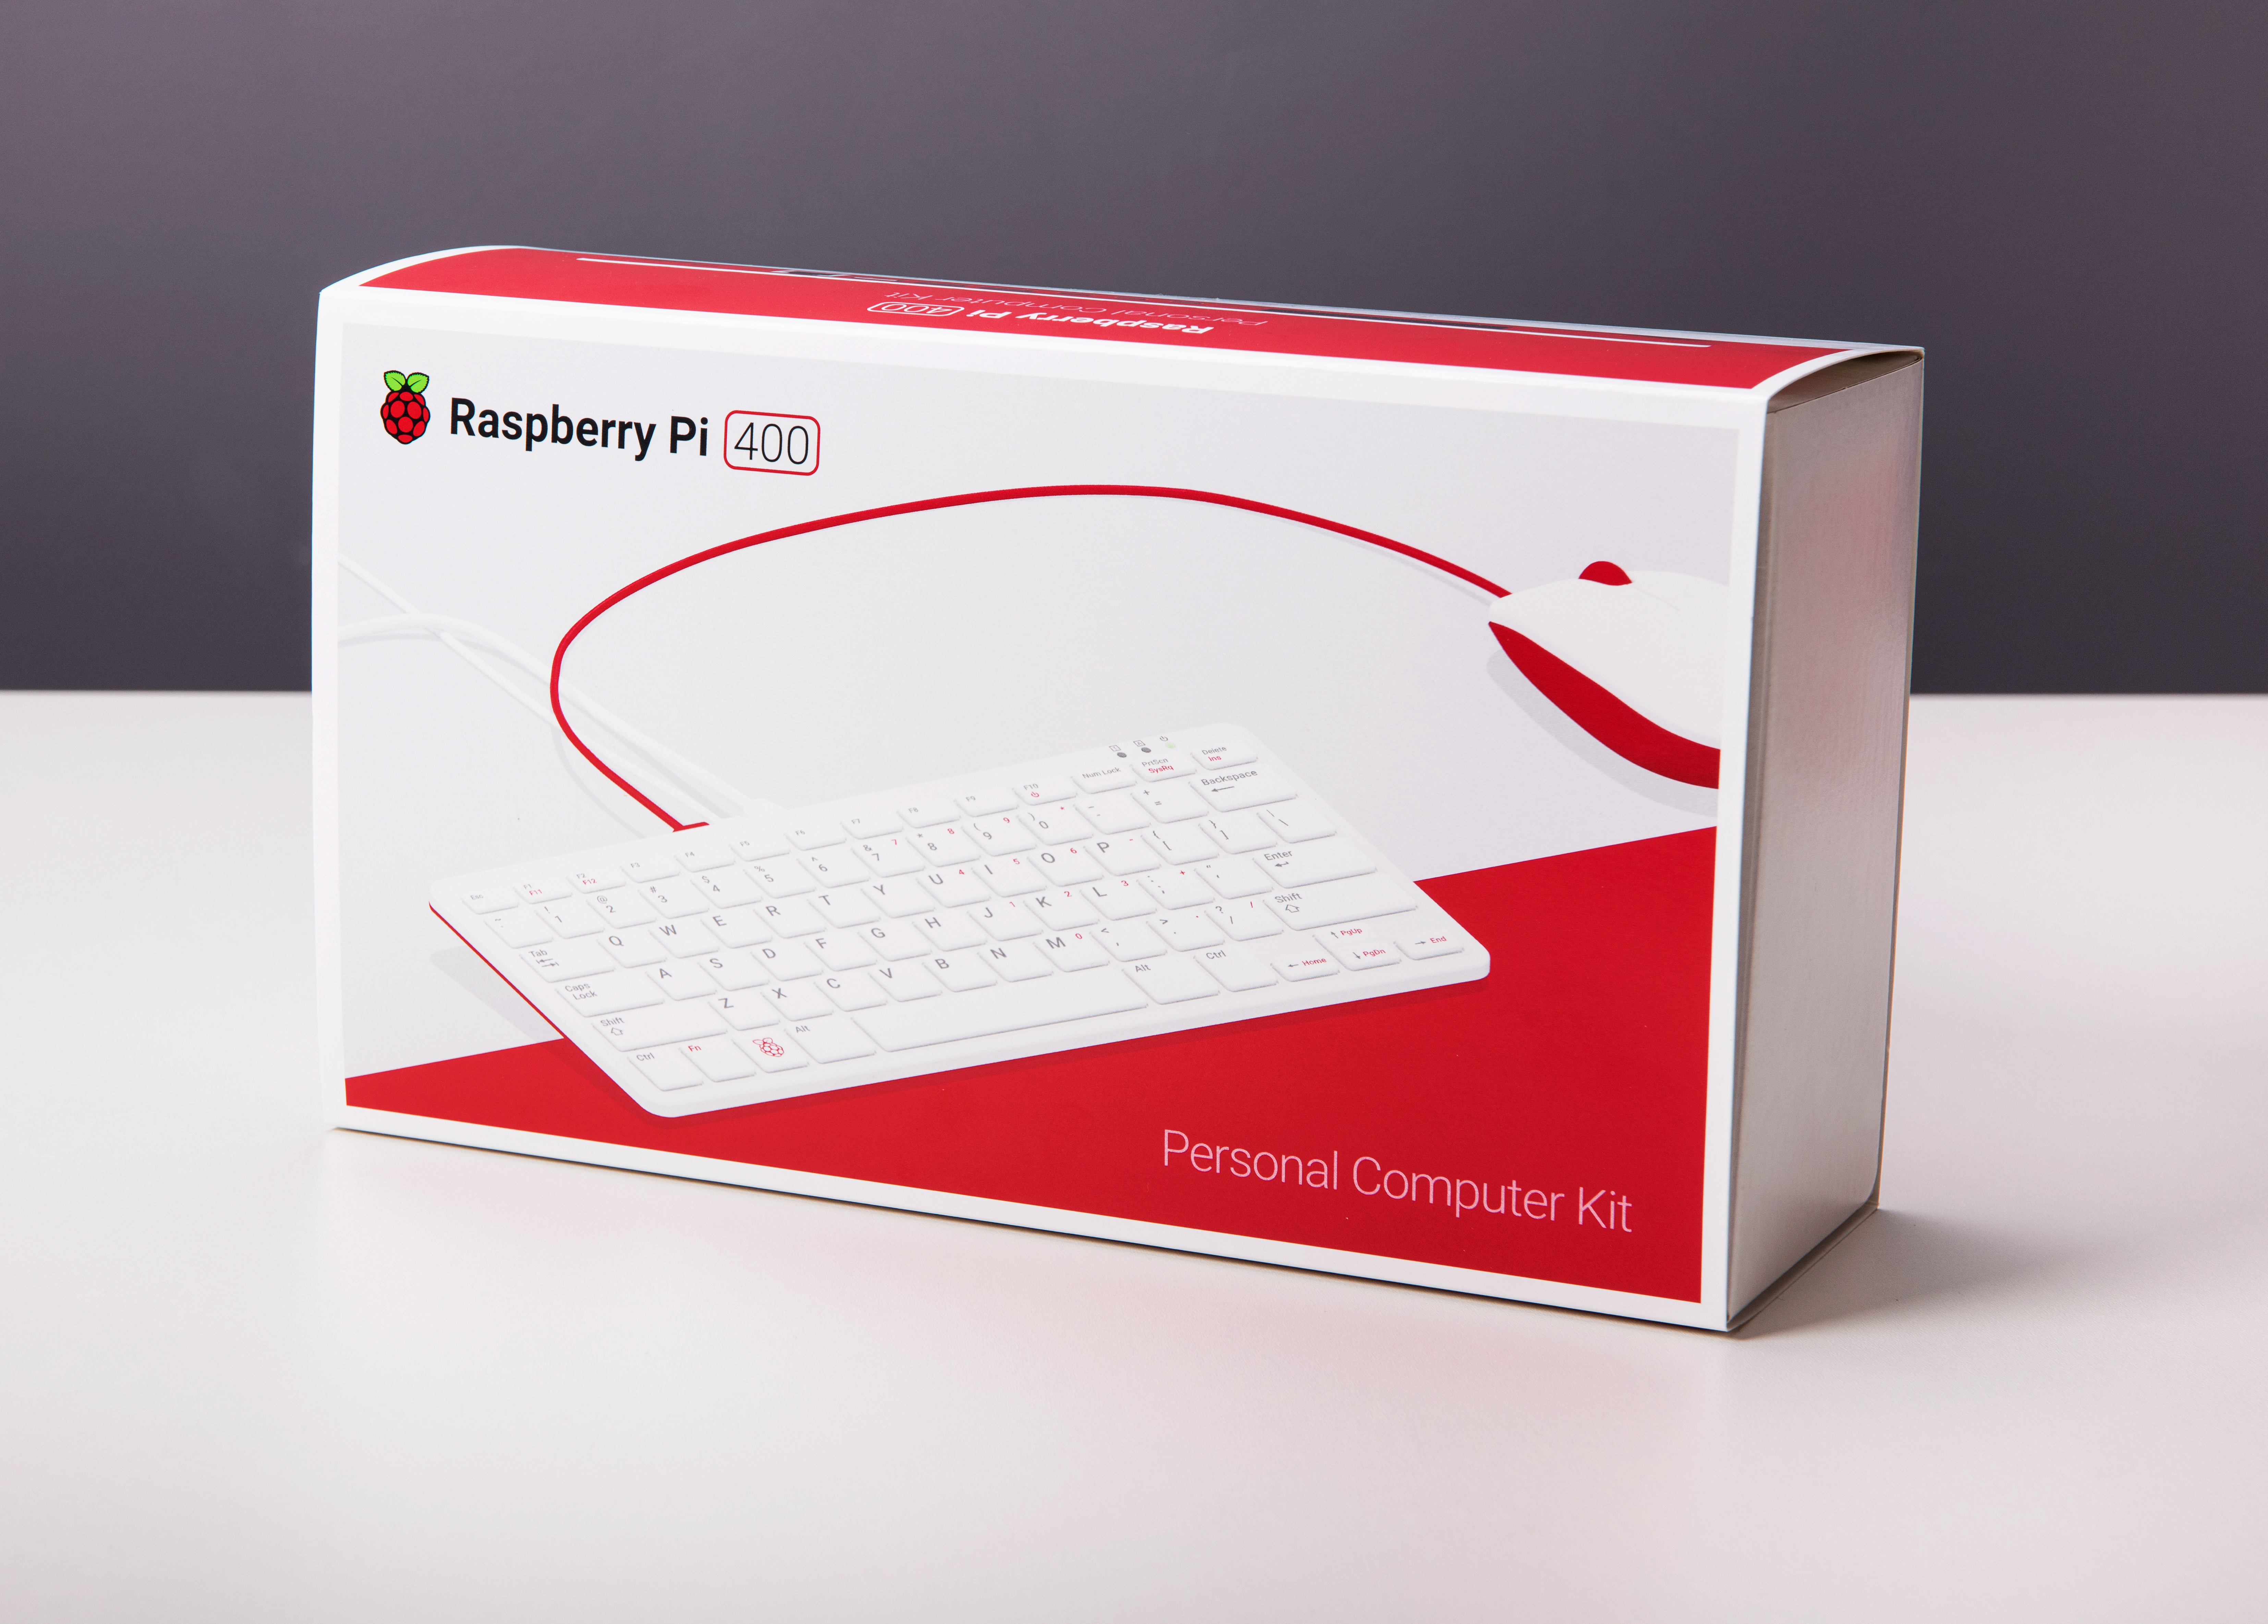 Raspberry Pi 400 All-in-One Personal Computer Kit - Italian Keyboard Layout